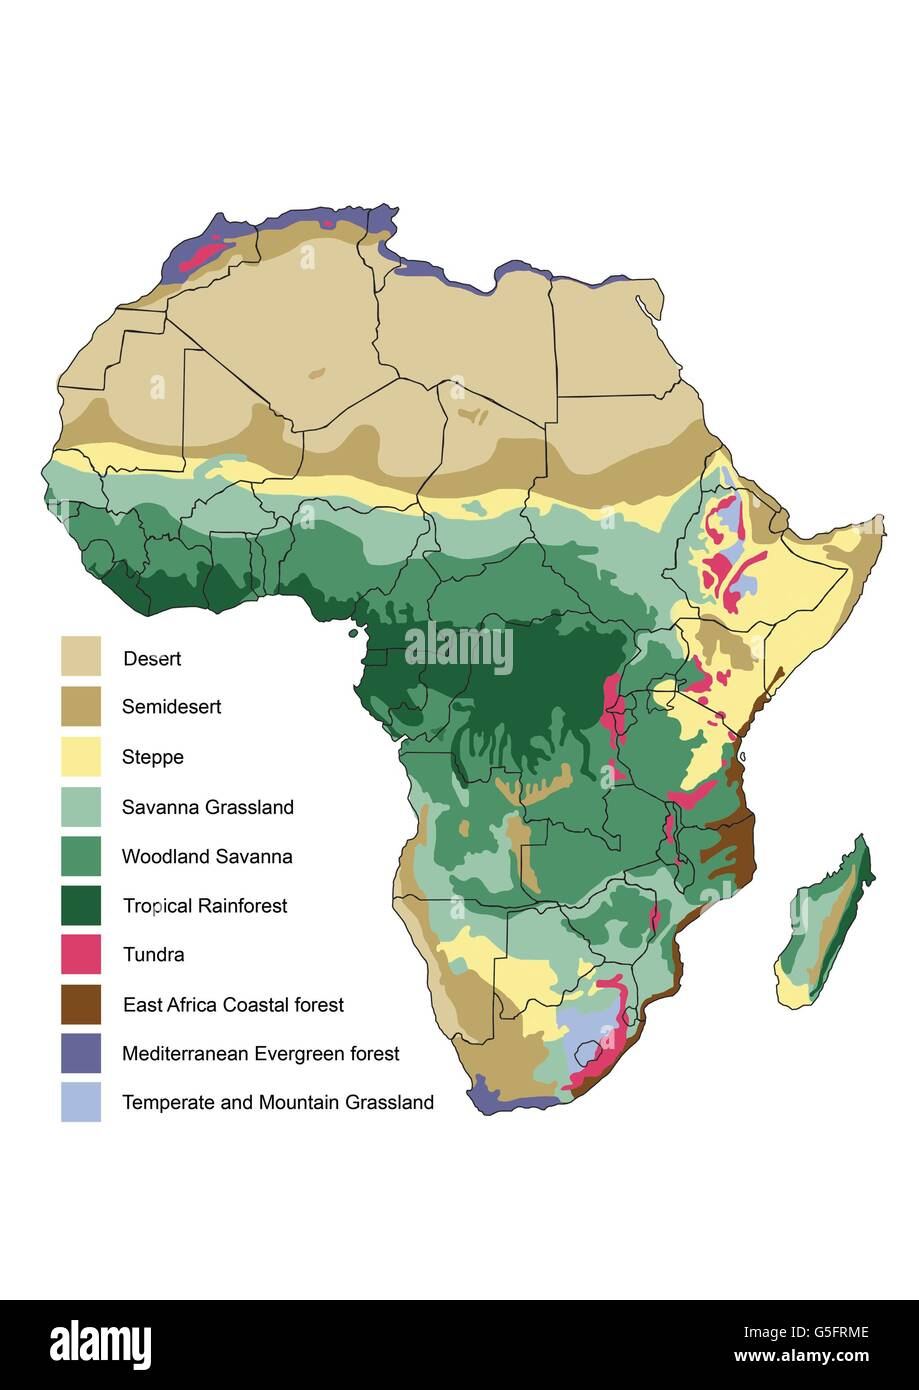 Map Of Africa Vegetation.Vegetation Map Of Africa Stock Photo 106683374 Alamy